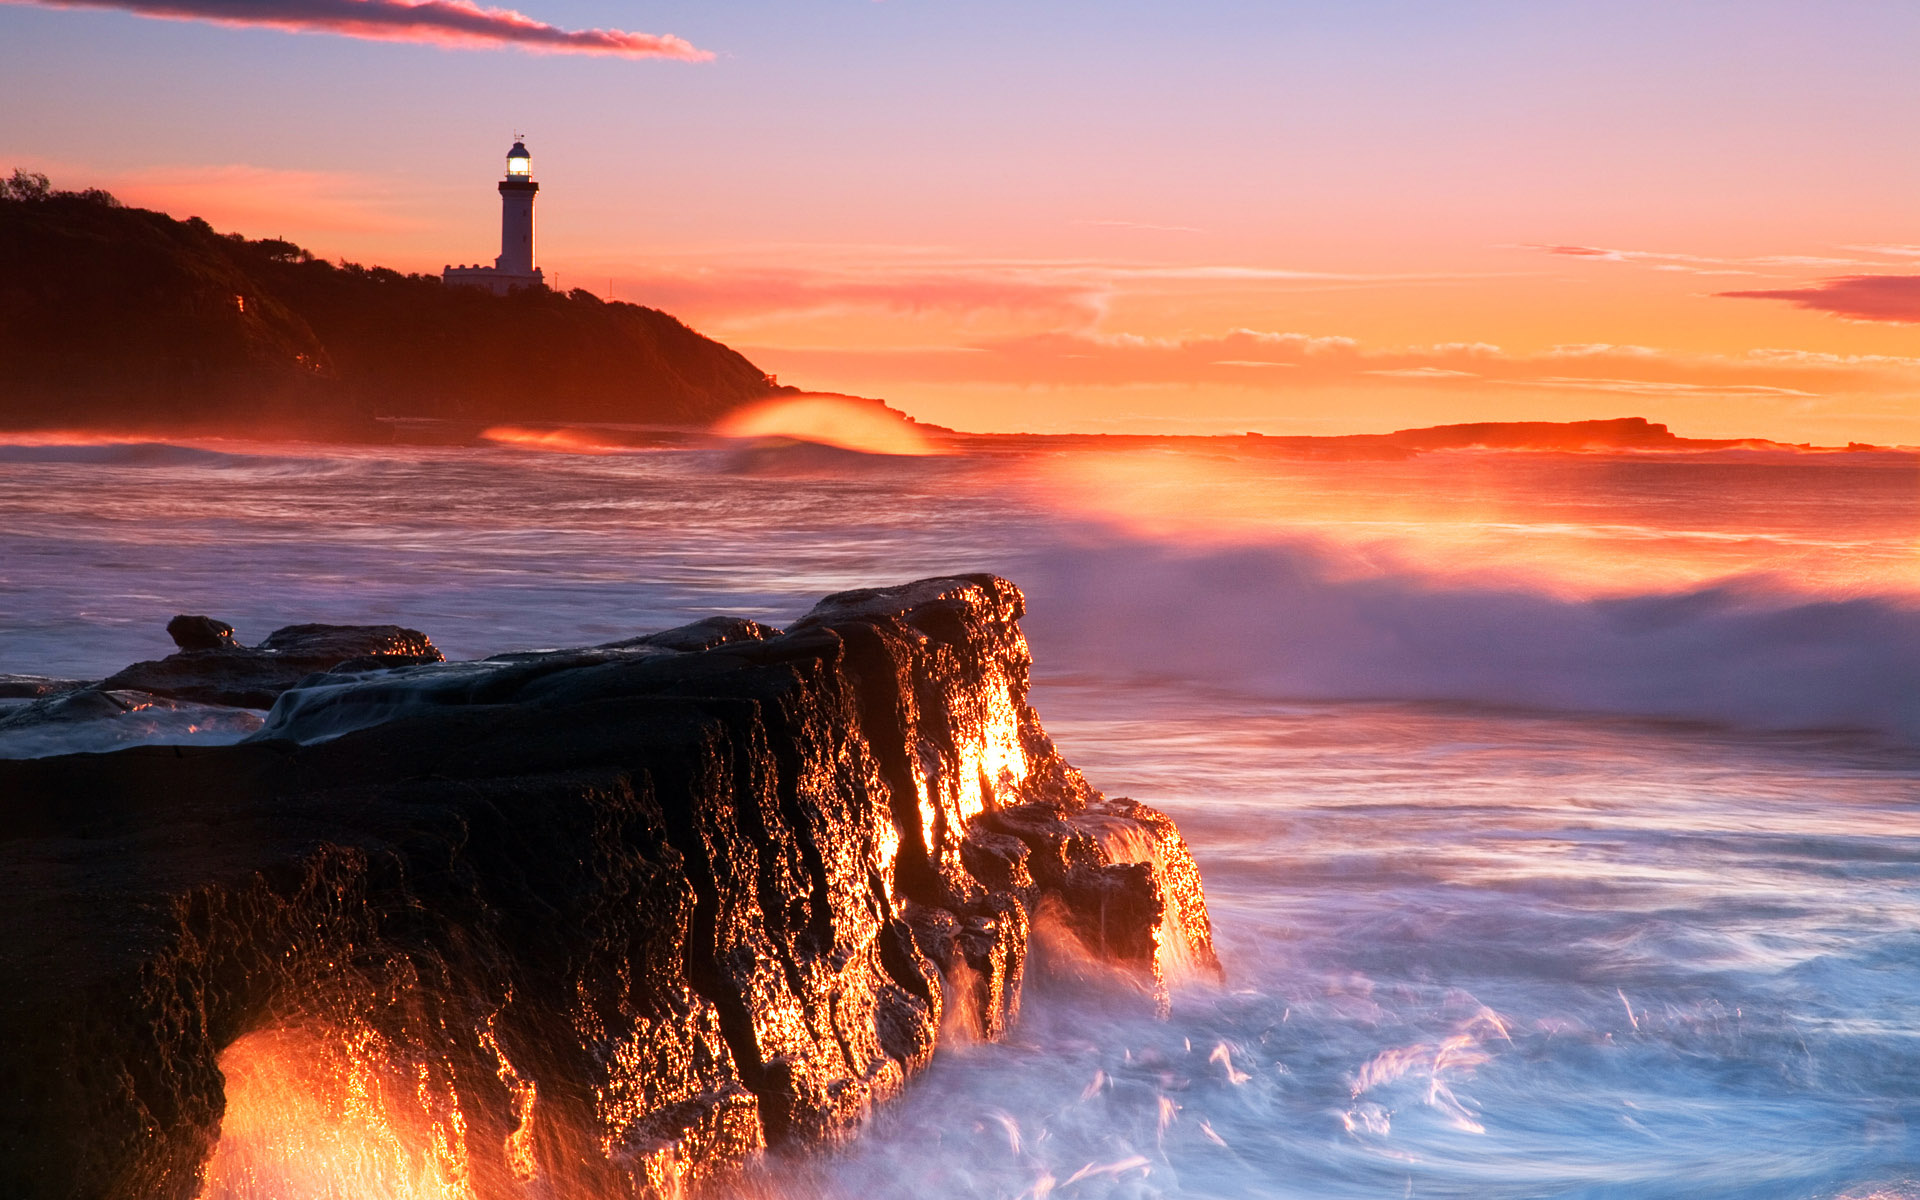 Man Made - Lighthouse  Orange Sunset Ocean Wave Coastline Wallpaper